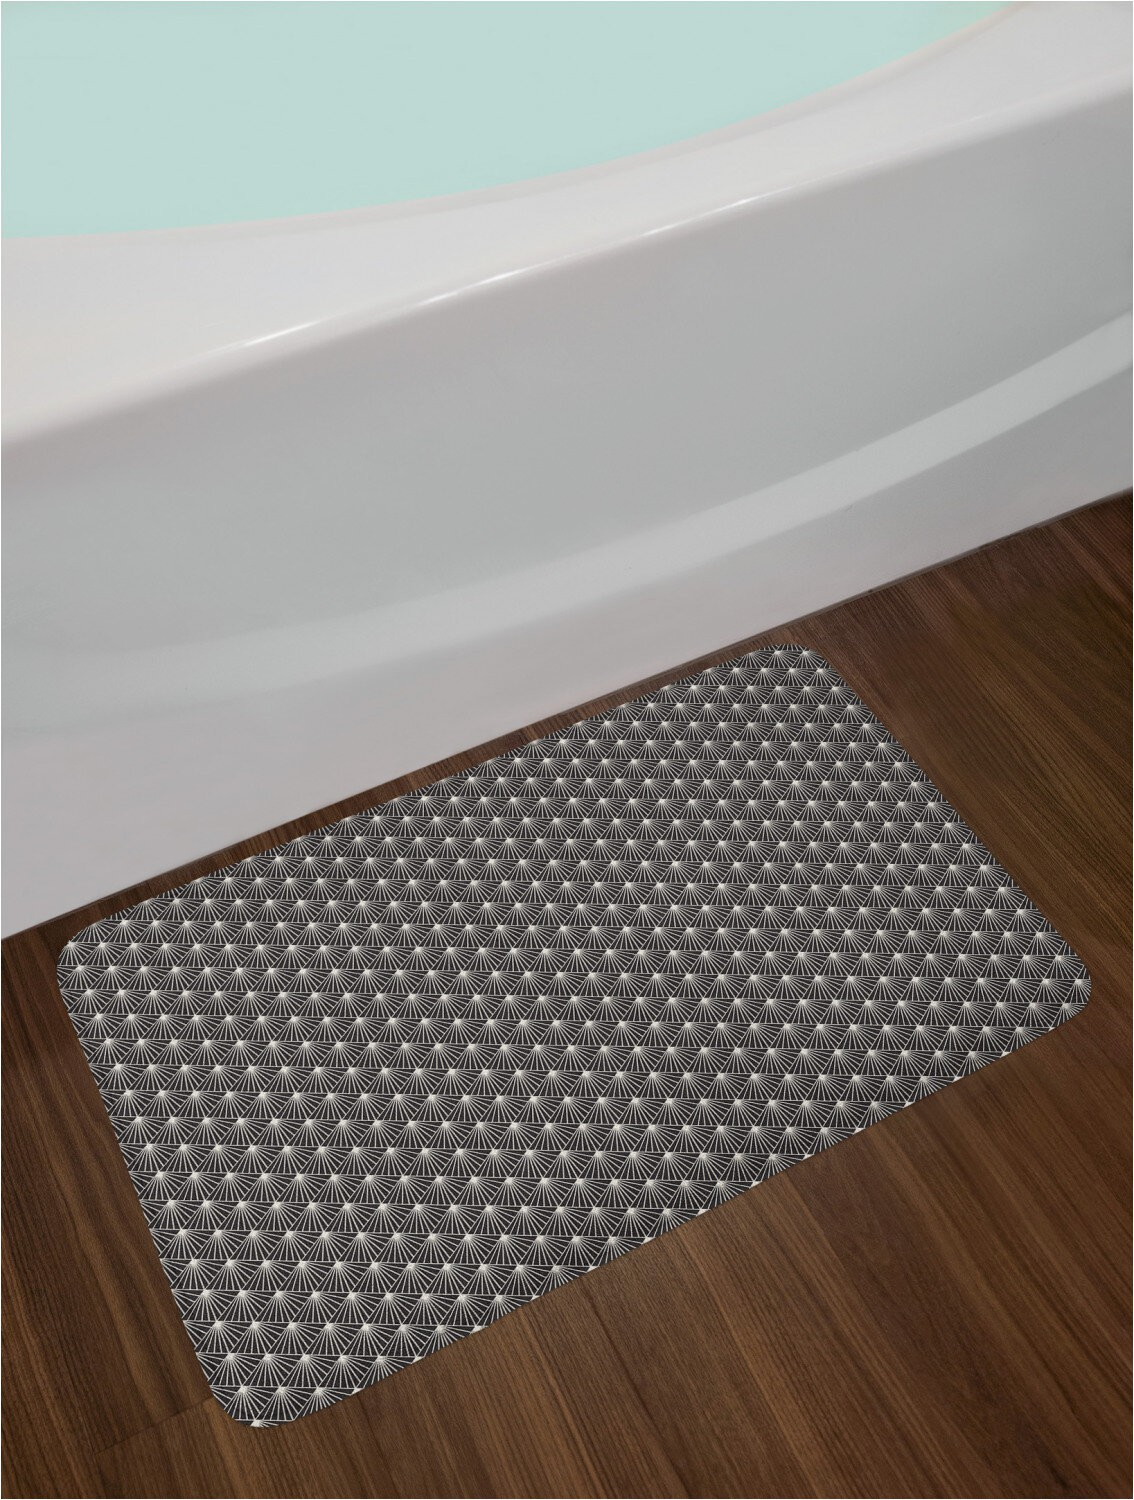 burst lines with rhombus gridin monochrome bath rug